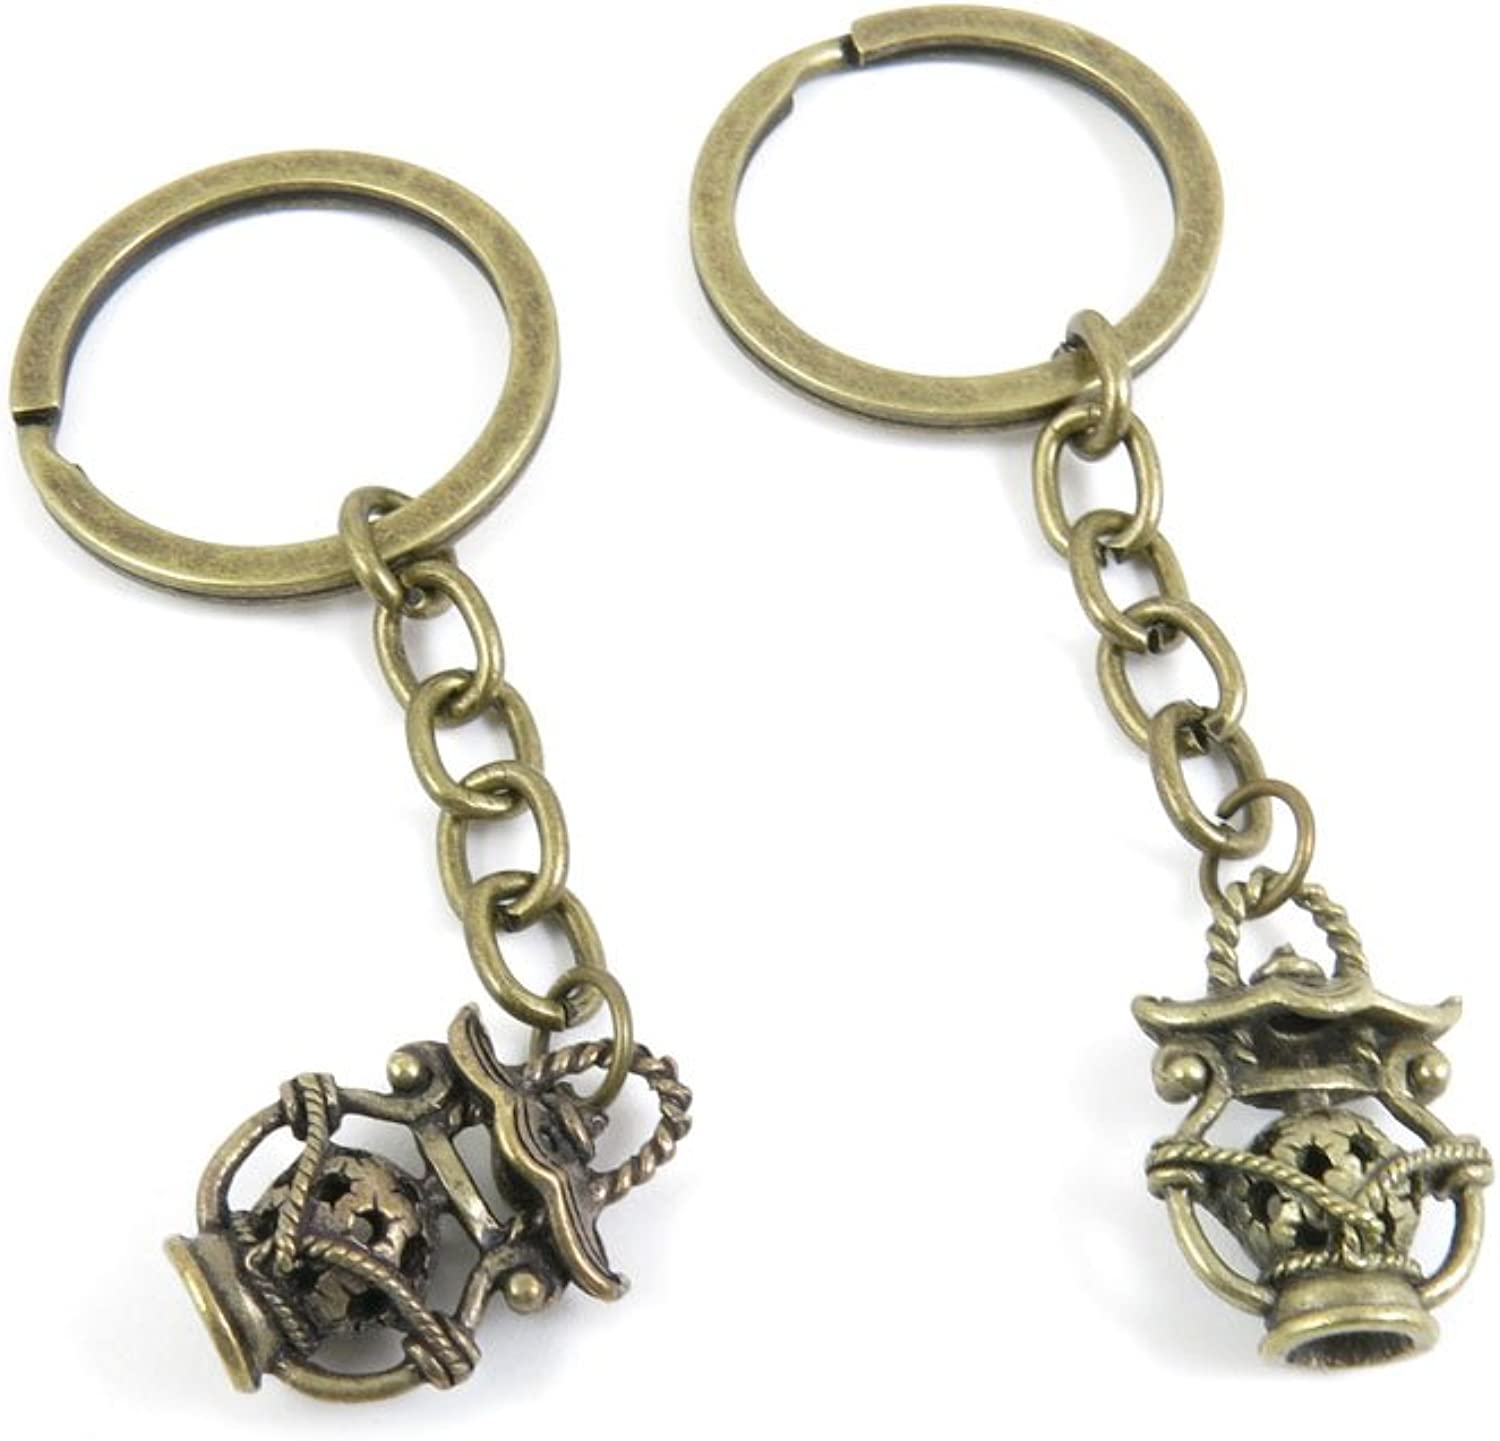 110 Pieces Fashion Jewelry Keyring Keychain Door Car Key Tag Ring Chain Supplier Supply Wholesale Bulk Lots B1UM4 Hollow Lantern